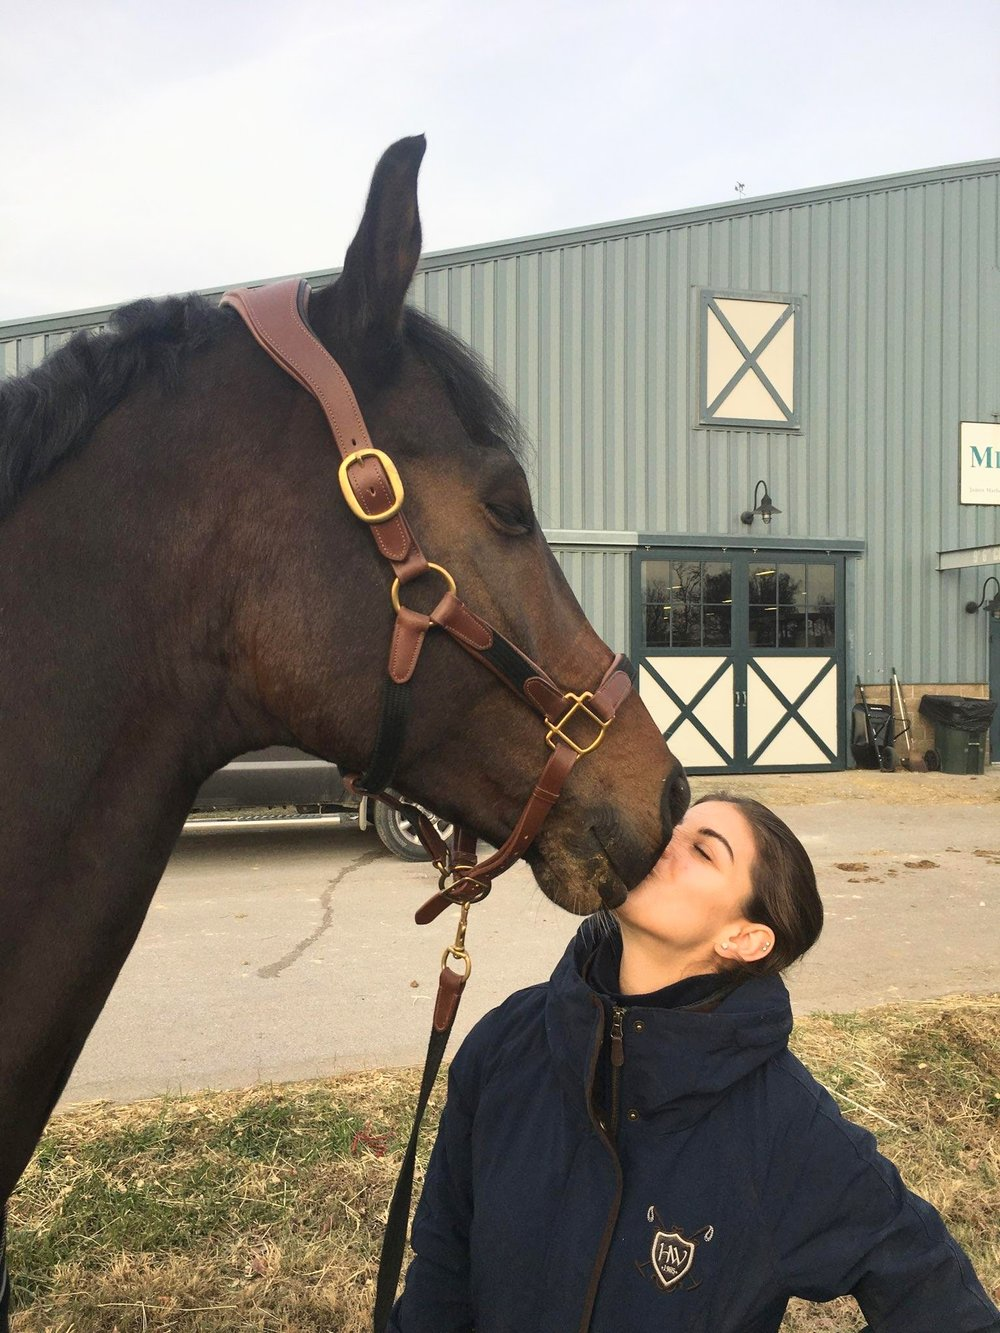 Maia has a kiss for the equine love of her life. (Photo courtesy of Maia Barnes)